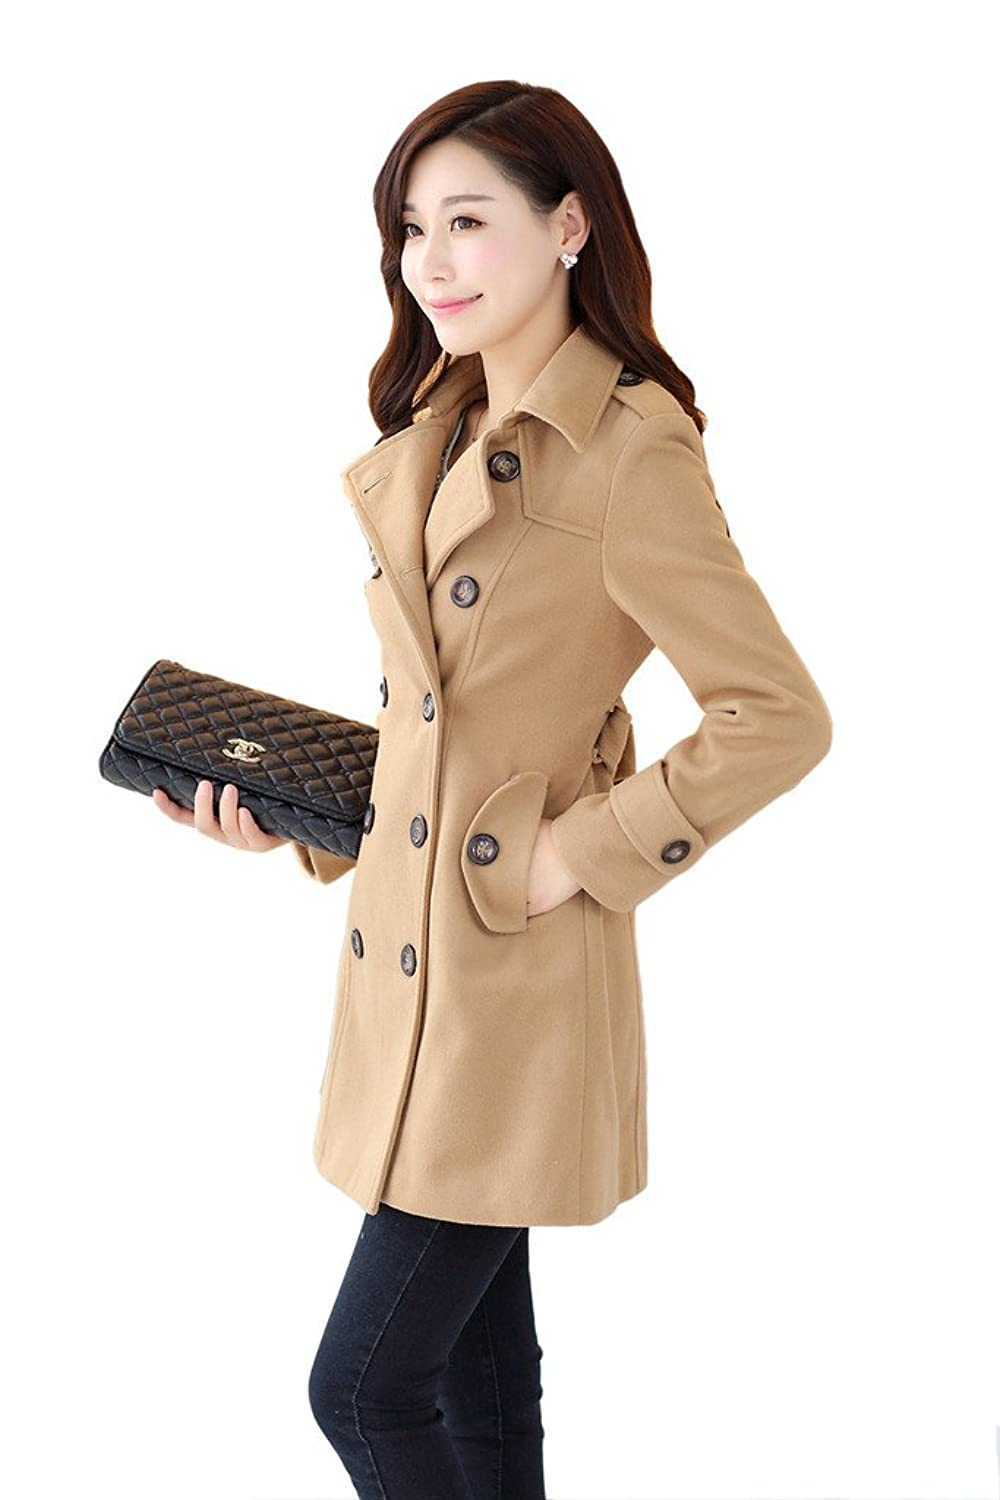 JUSTINCITY Womens Long Double-Breasted Stand Collar Hooded Wool Coat Solid Color Slimming Woollen Coat